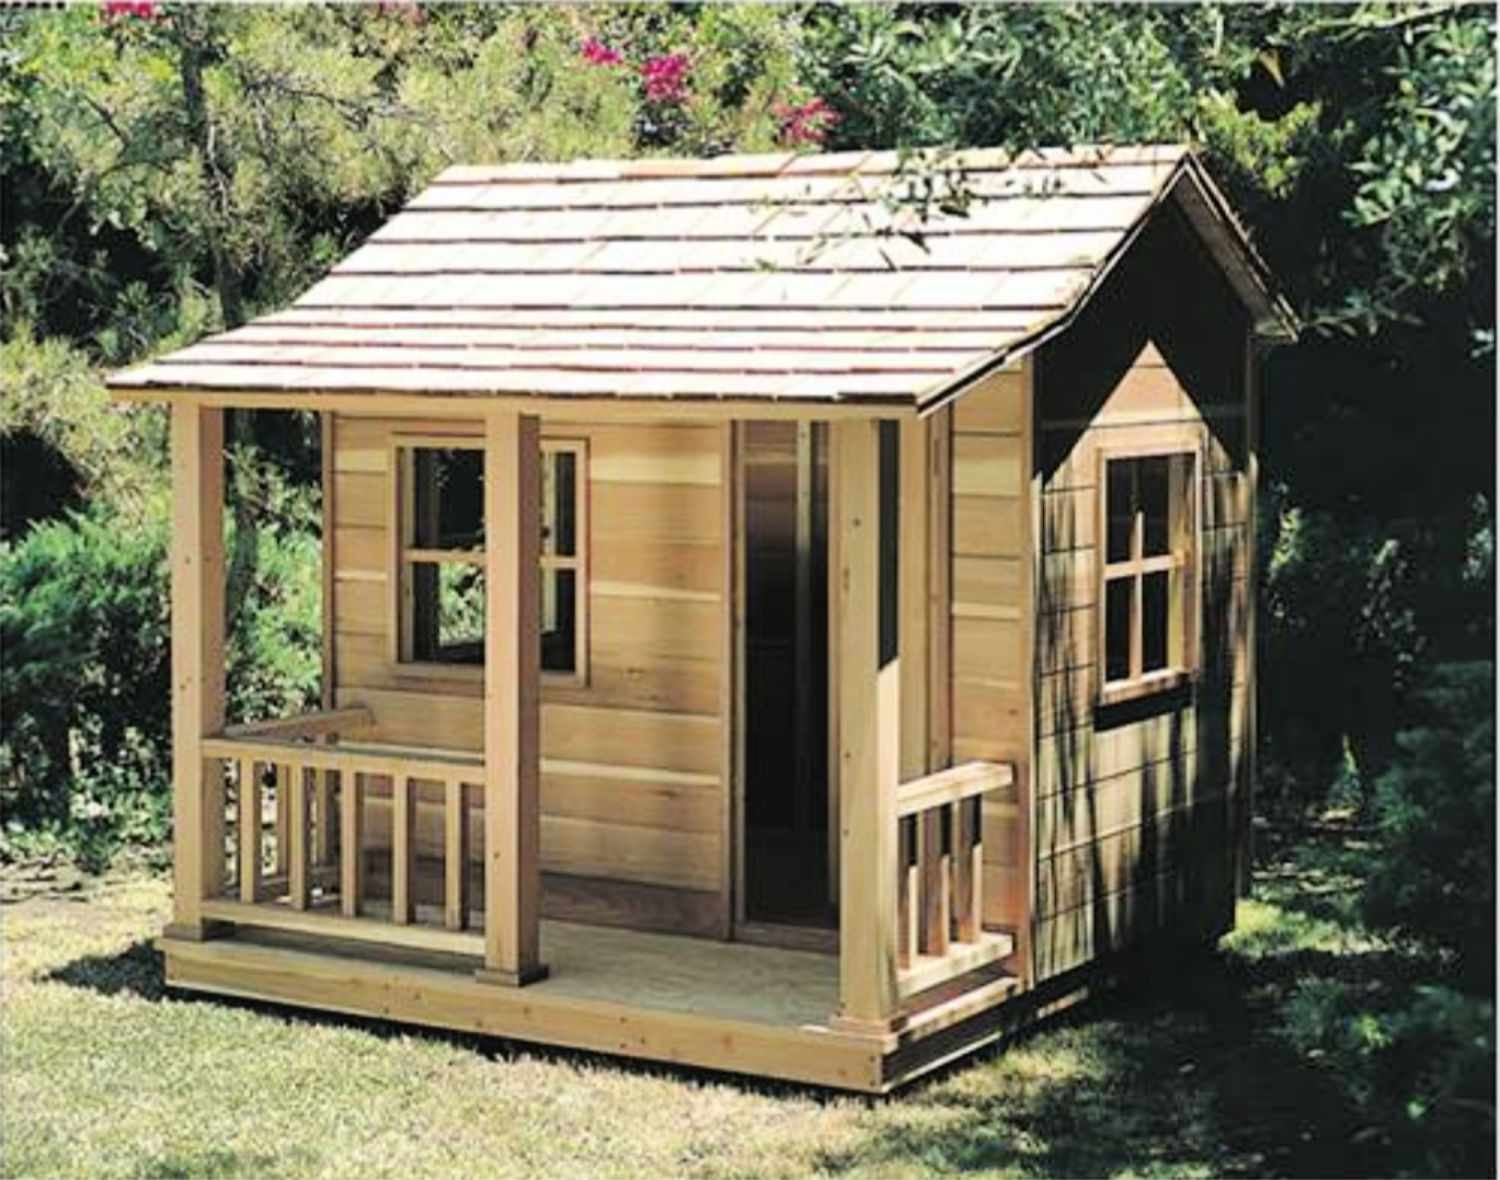 Surprising 16 Free Backyard Playhouse Plans For Kids Interior Design Ideas Clesiryabchikinfo